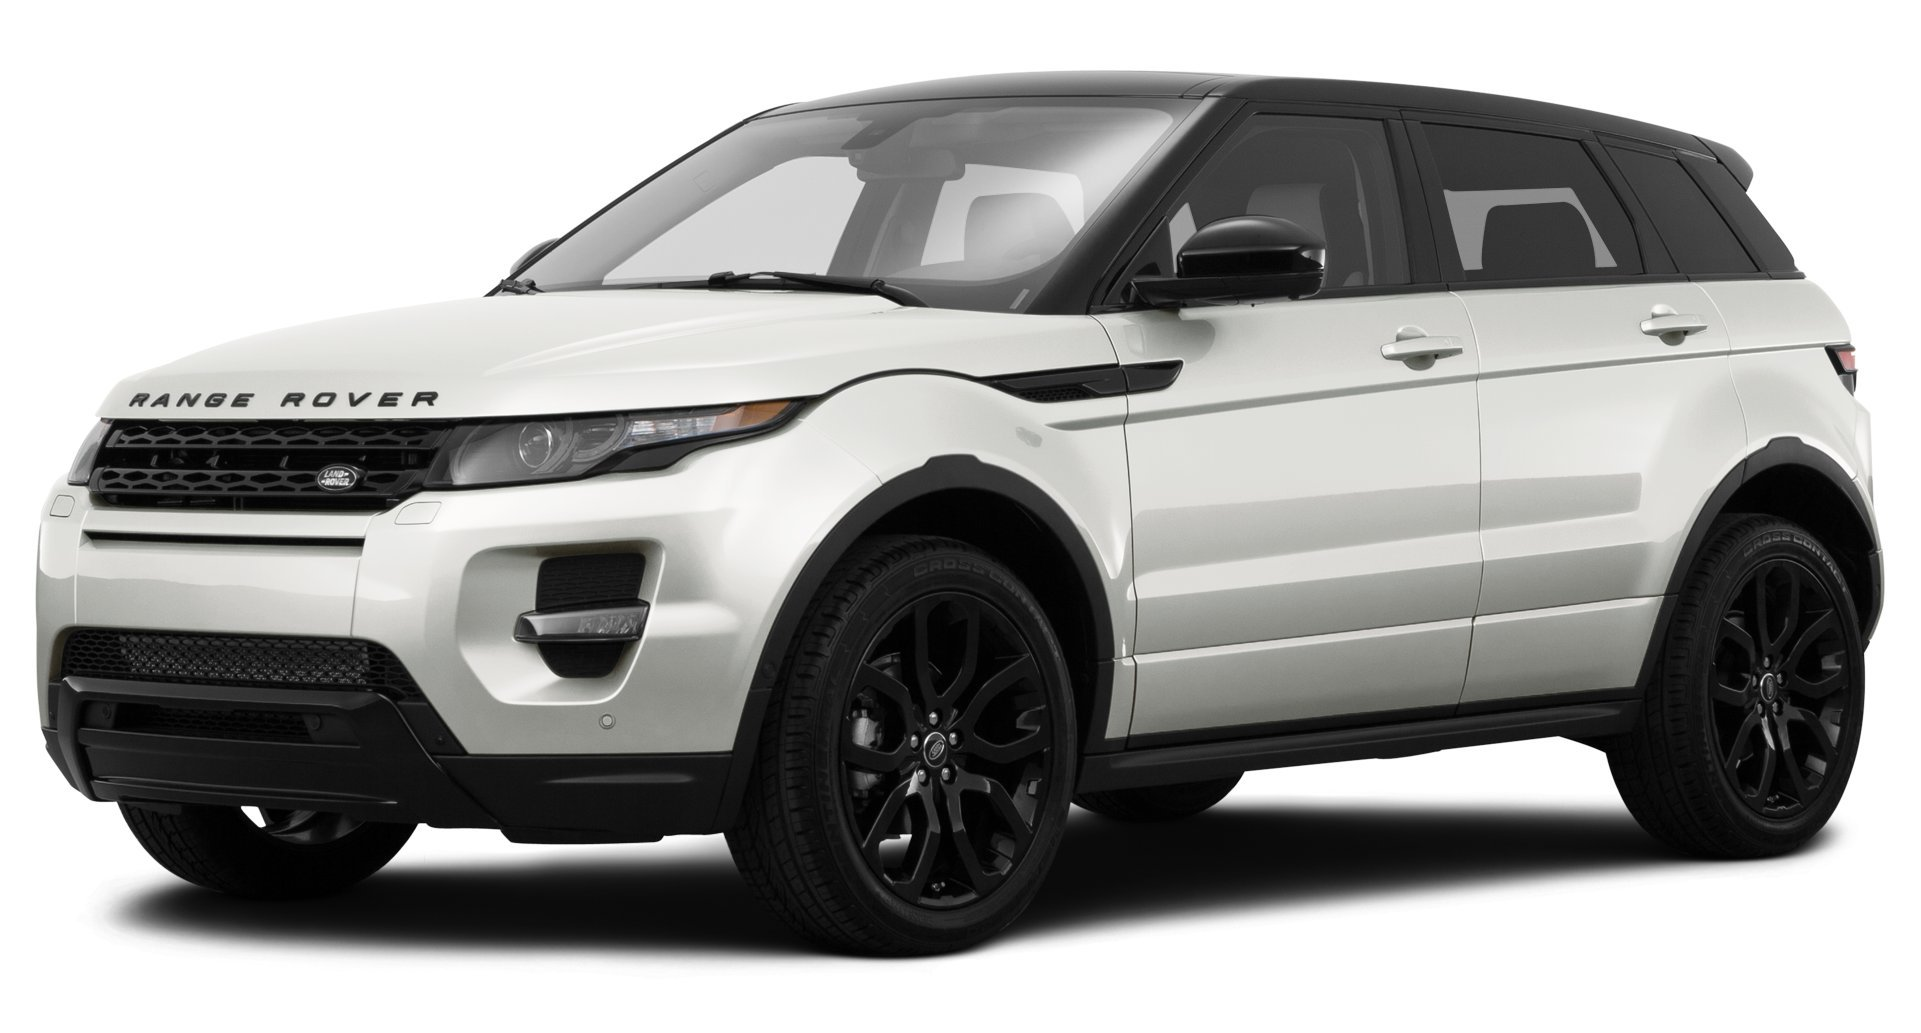 2015 land rover range rover sport reviews images and specs vehicles. Black Bedroom Furniture Sets. Home Design Ideas